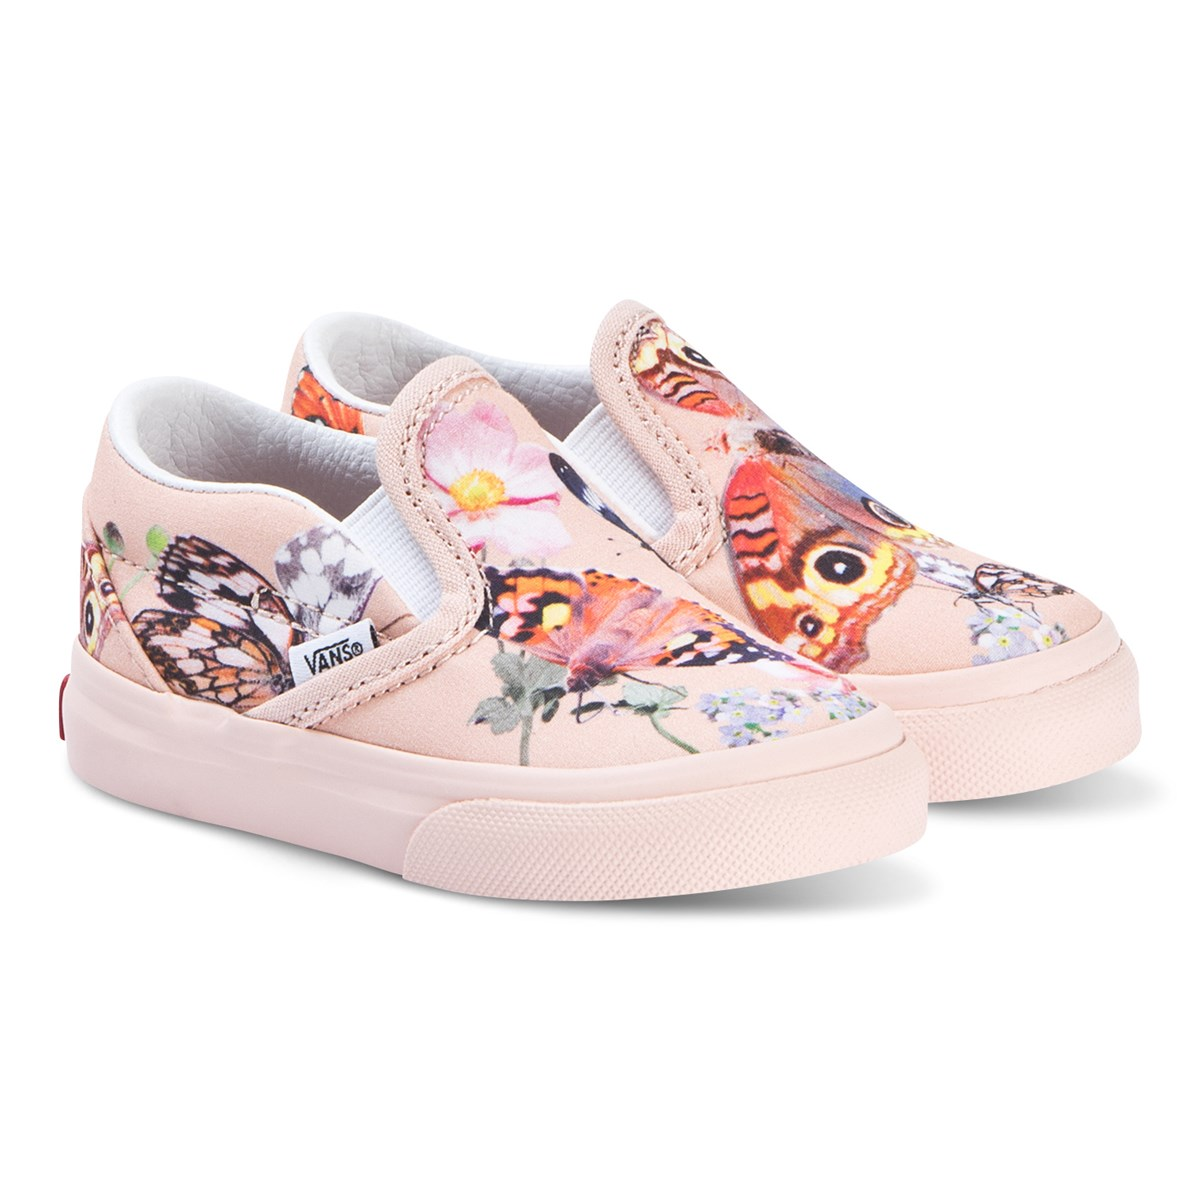 Molo Pink Butterfly Print Vans X Molo Slip On Shoes